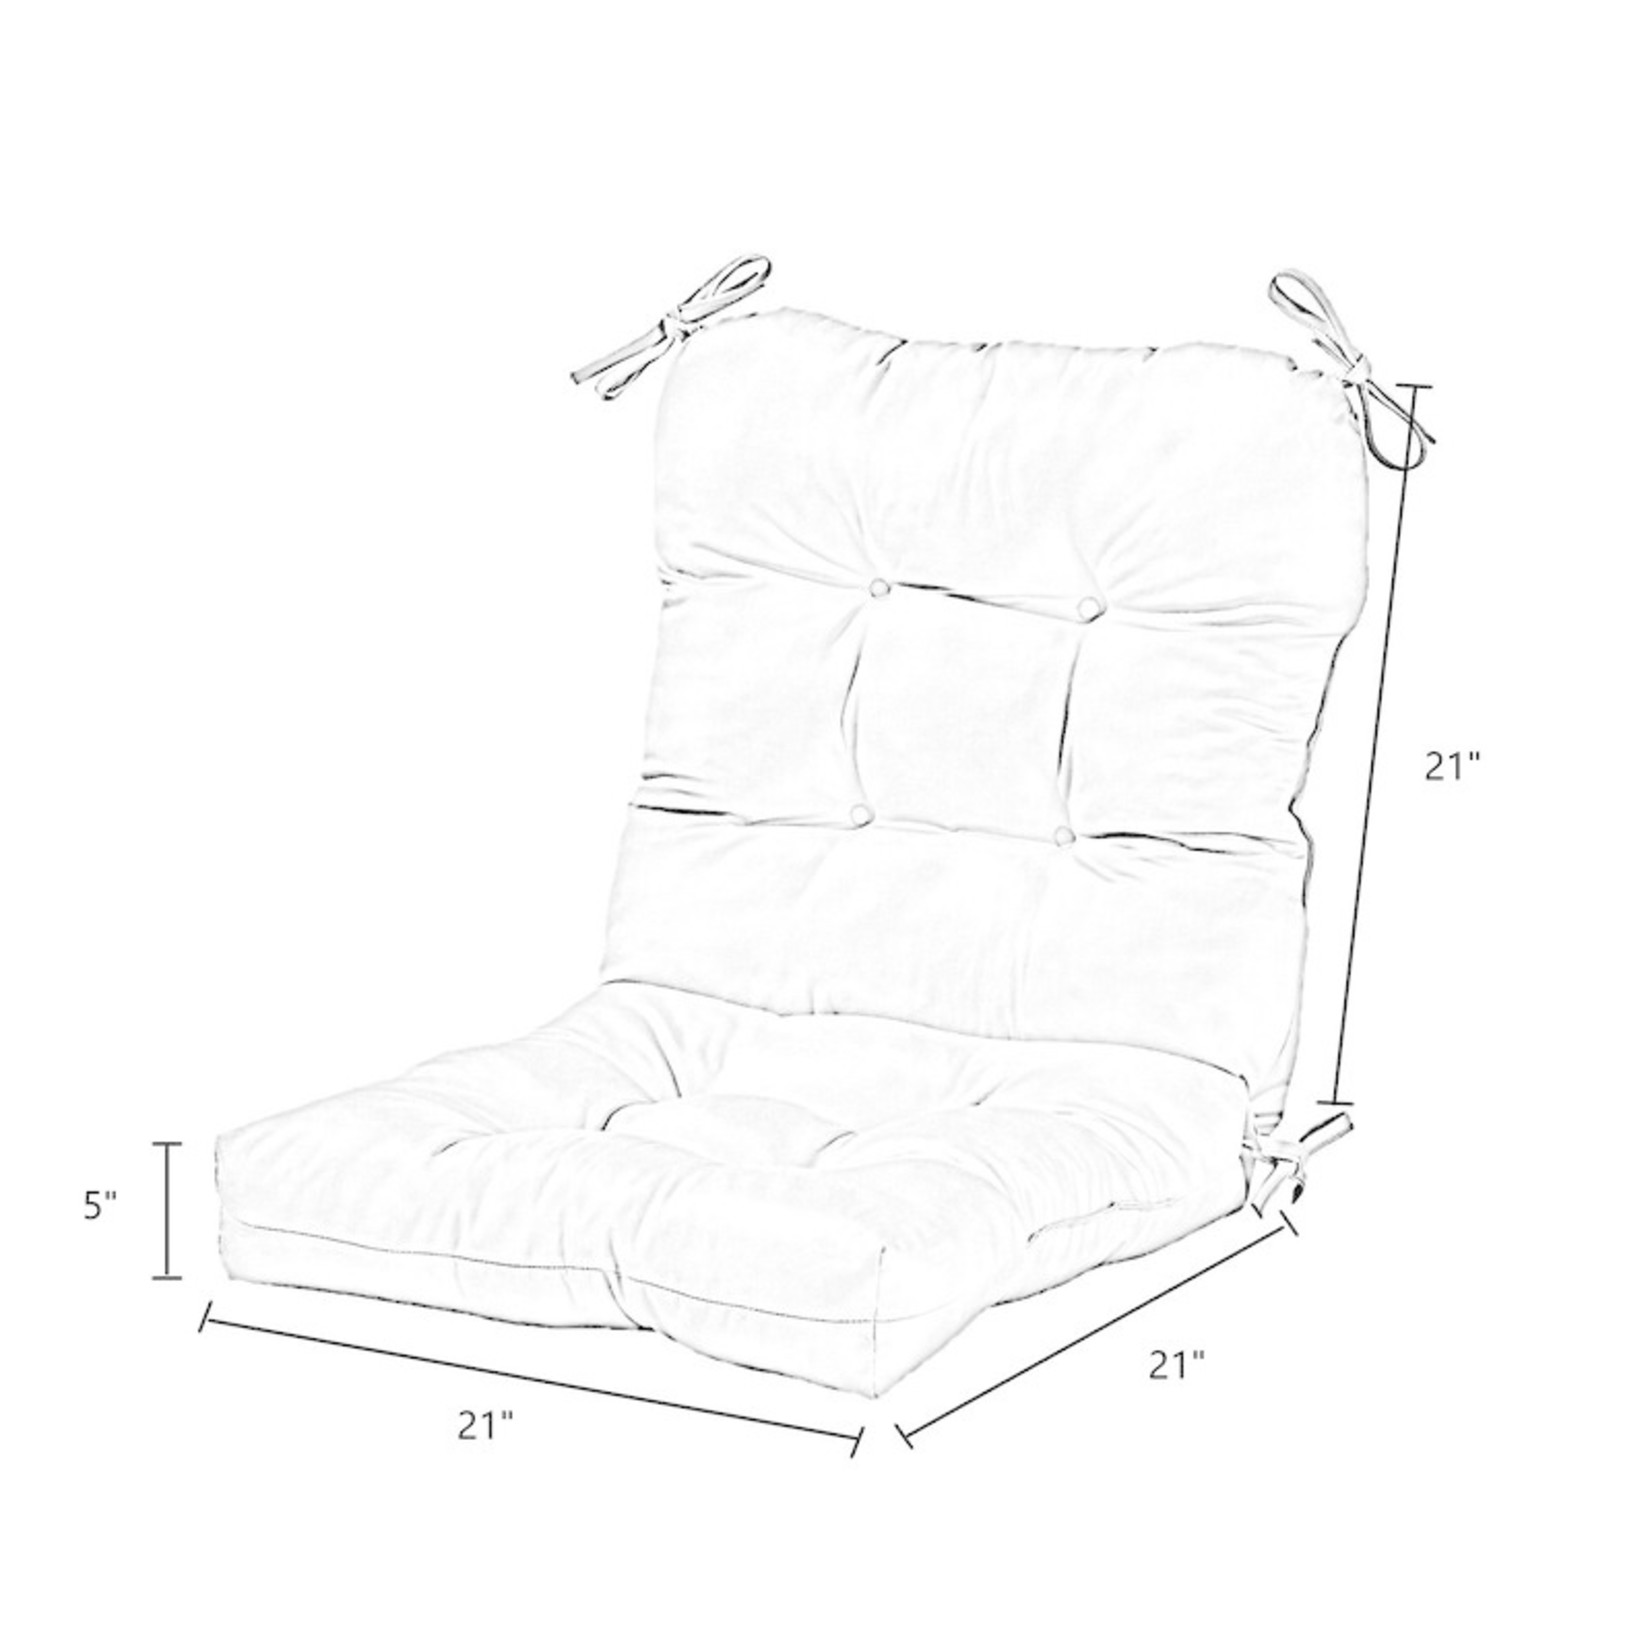 *Sarver Indoor/Outdoor Seat/Back Cushion - Stone - Set of 2 (Final Sale)